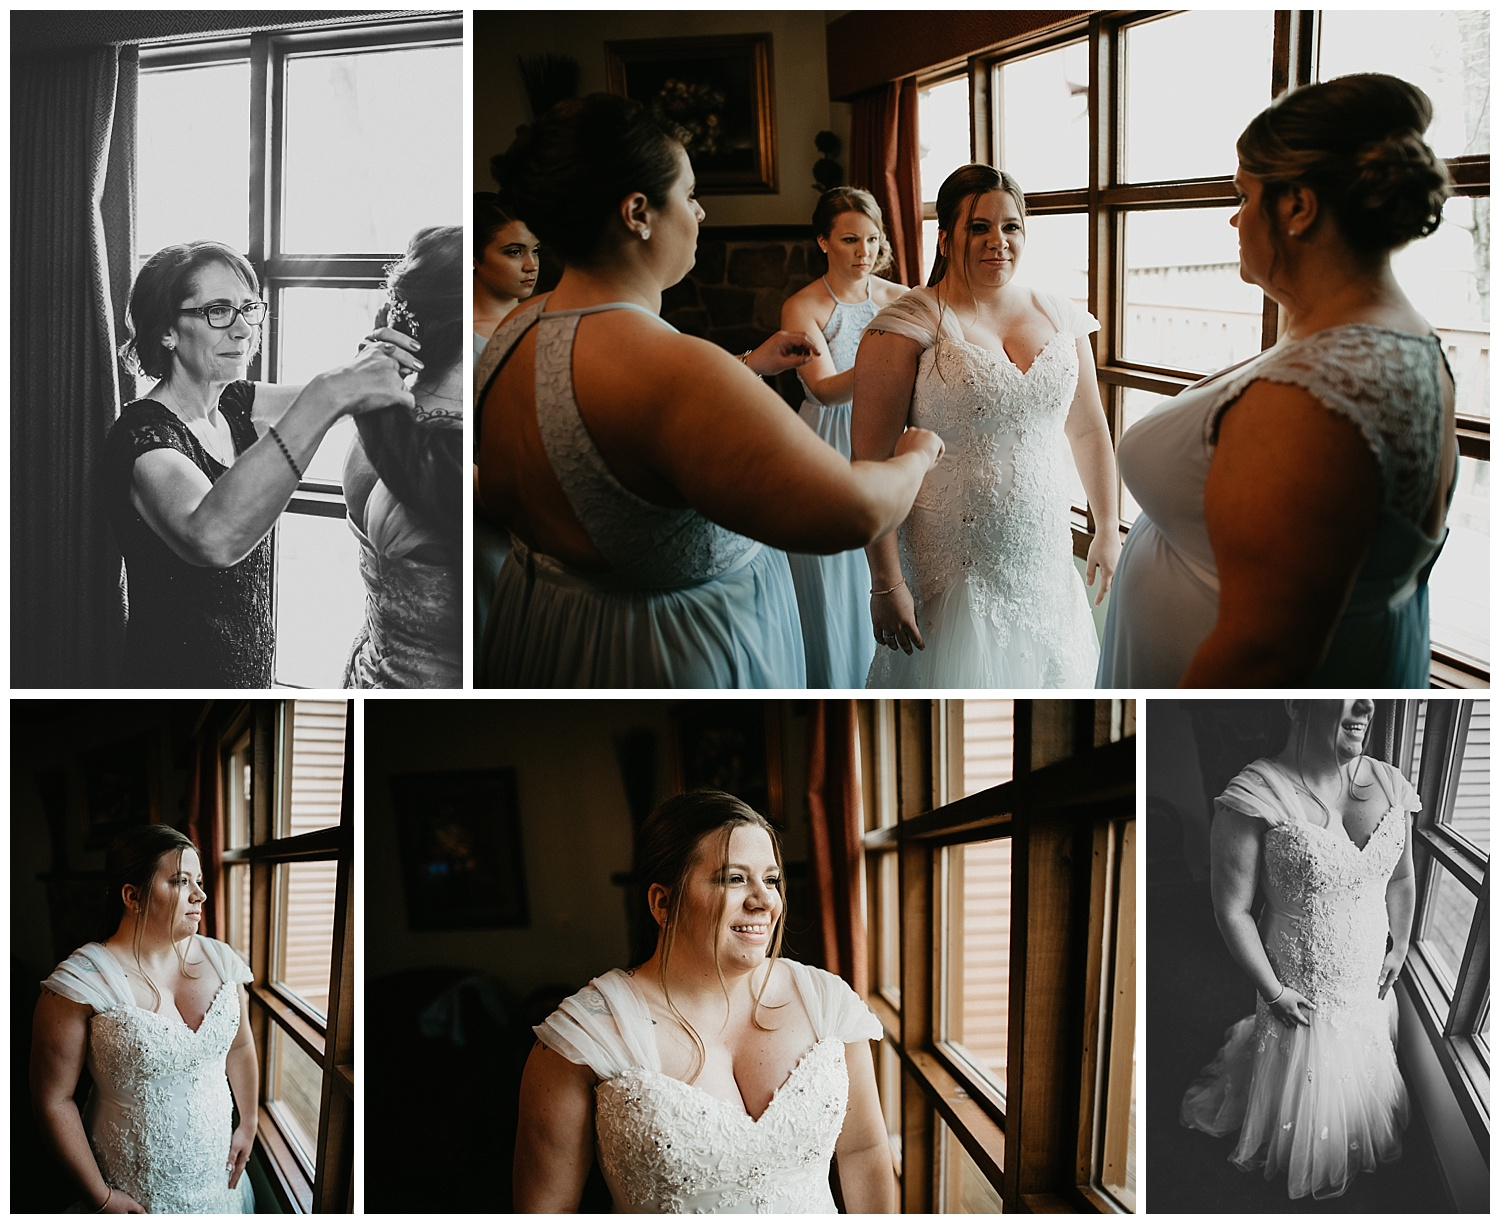 NEPA-wedding-photographer-at-the-Stroudsmoor-Country-Inn-Stroudsburg-PA_0006.jpg